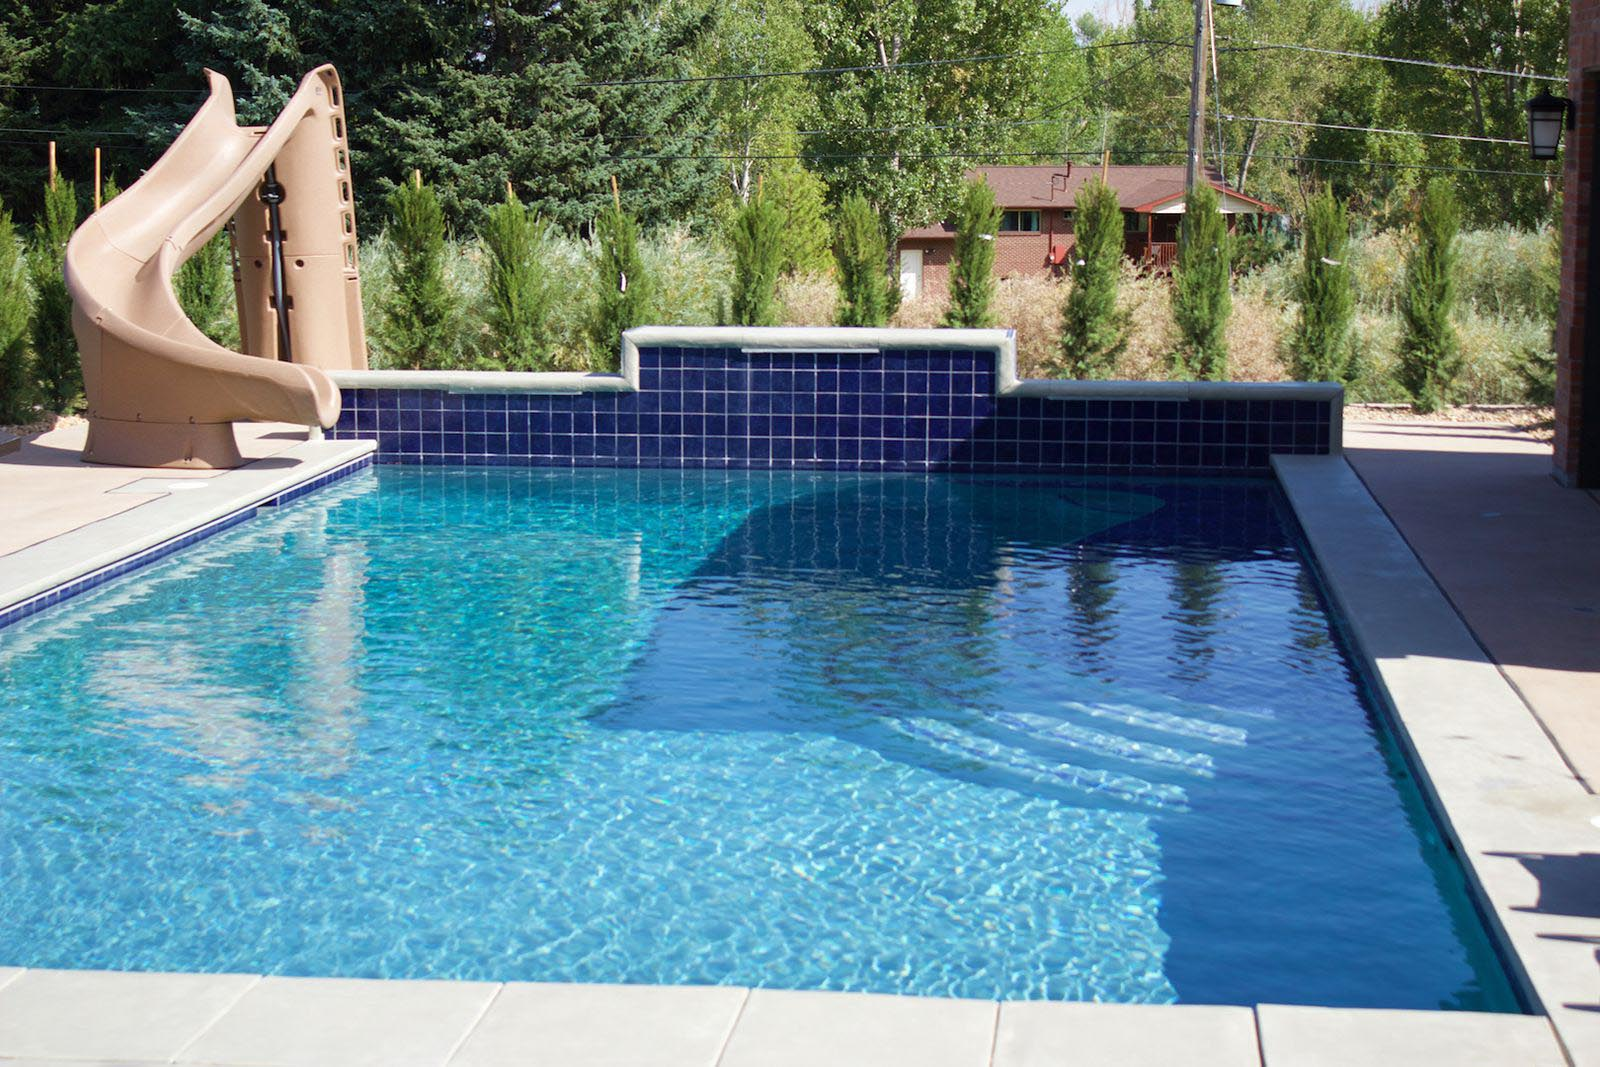 Slide for backyard pool backyard design ideas for Pictures of backyard pools